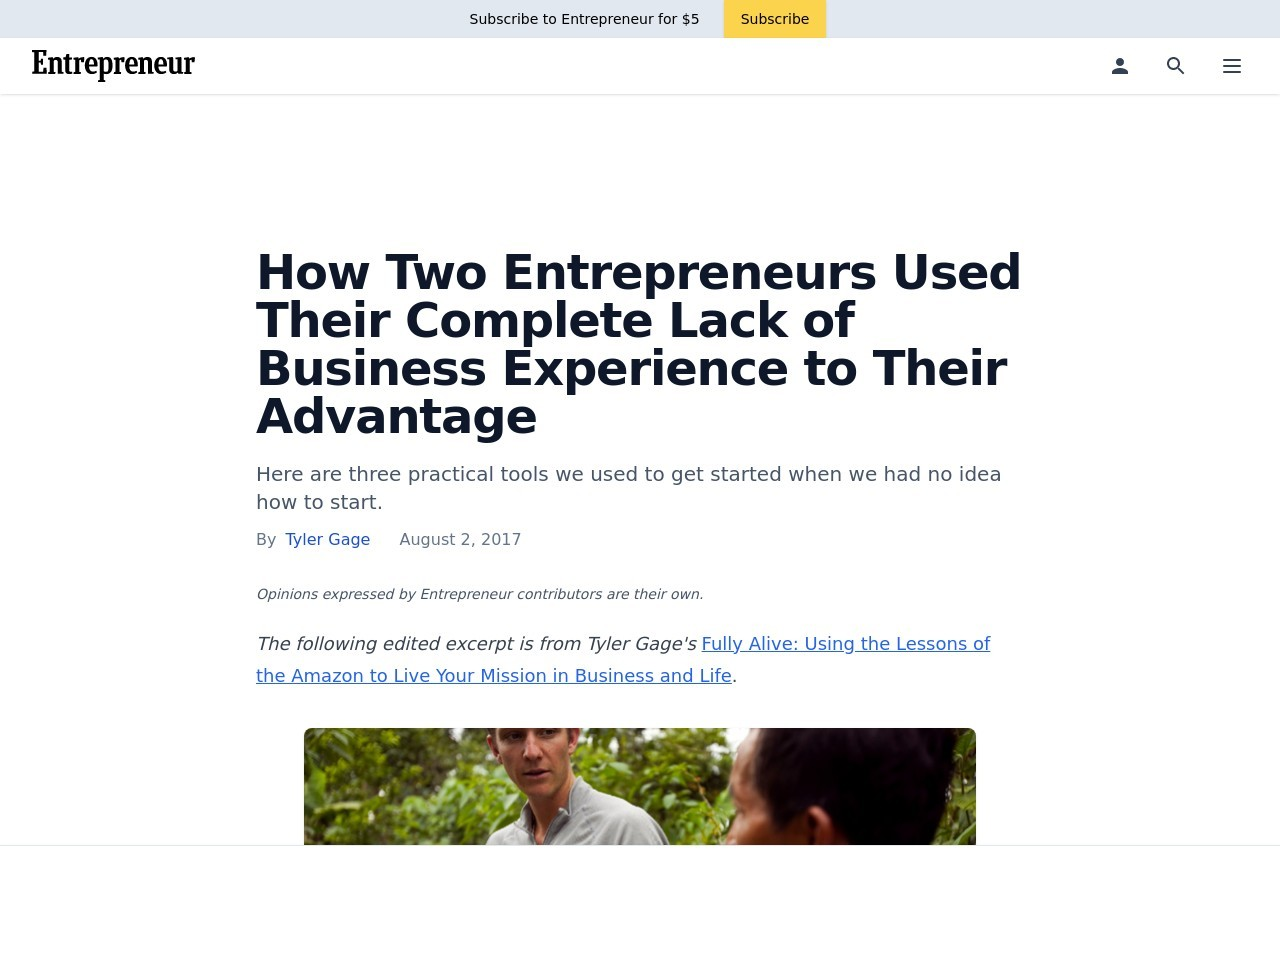 How Two Entrepreneurs Used Their Complete Lack of Business Experience to Their Advantage